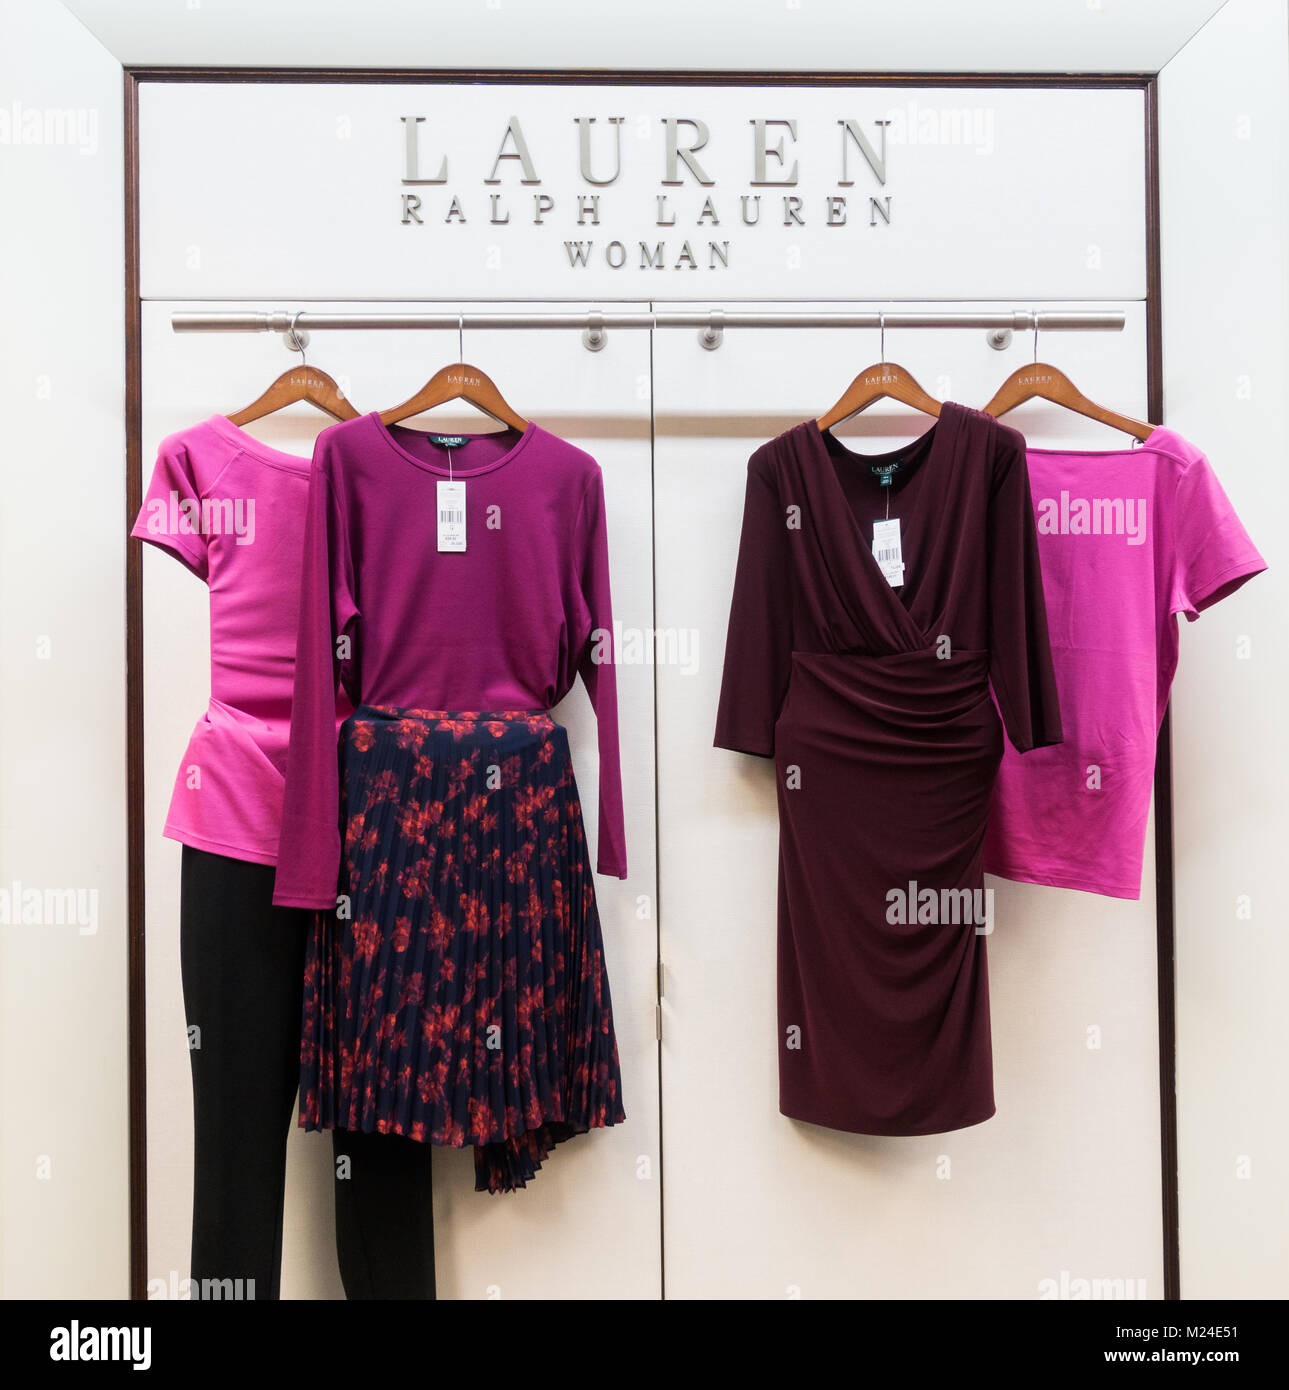 Ralph Lauren woman clothing in large department store in Spain - Stock Image